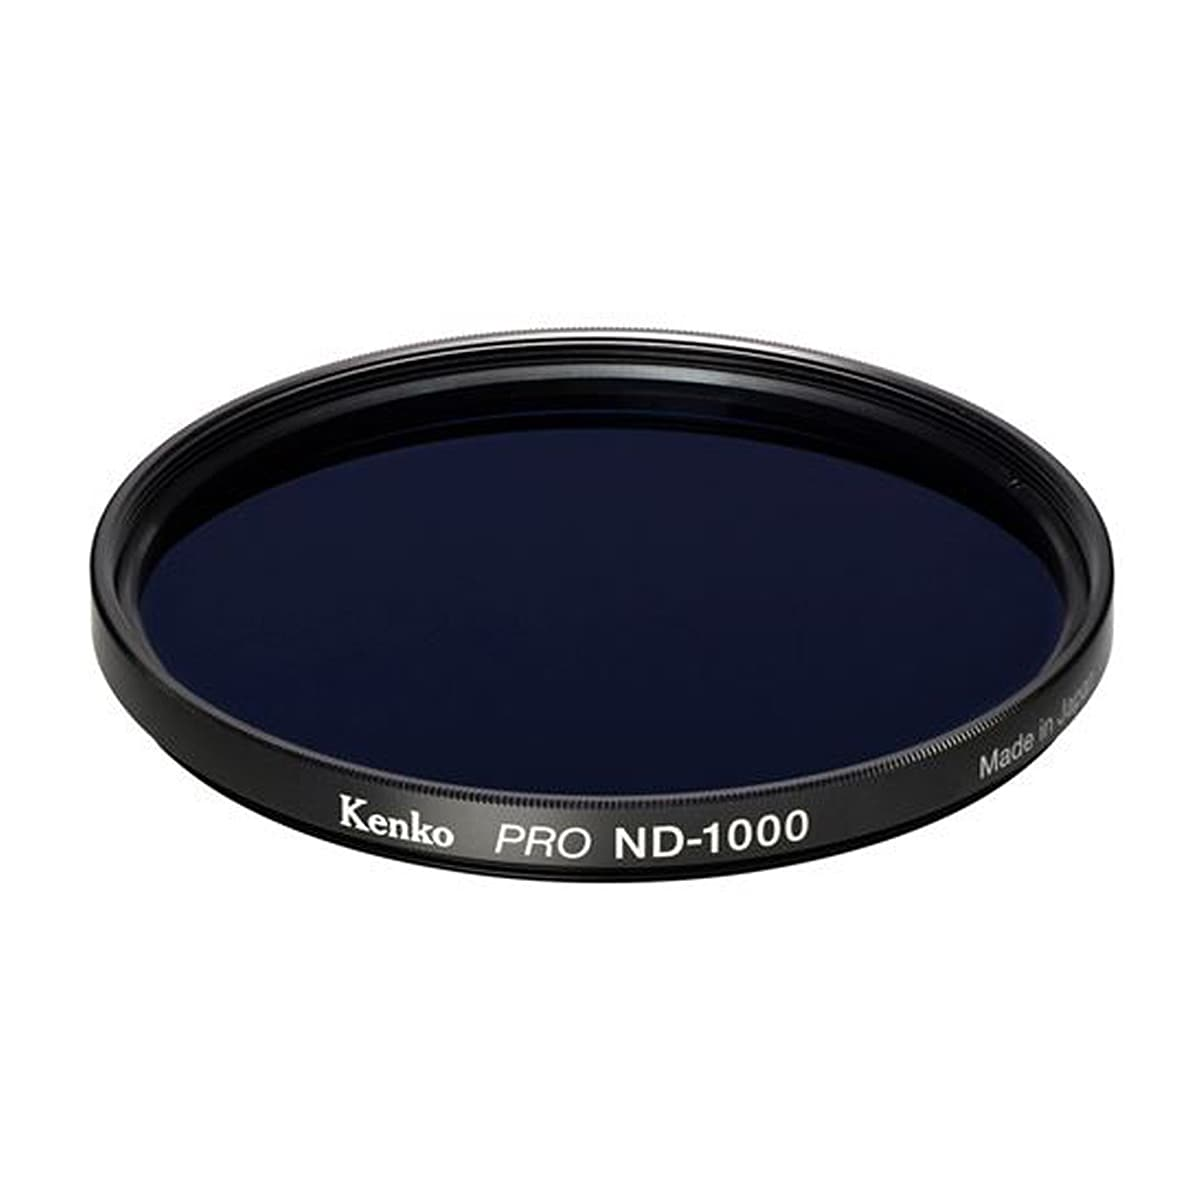 Kenko REAL PRO ND1000 67mm